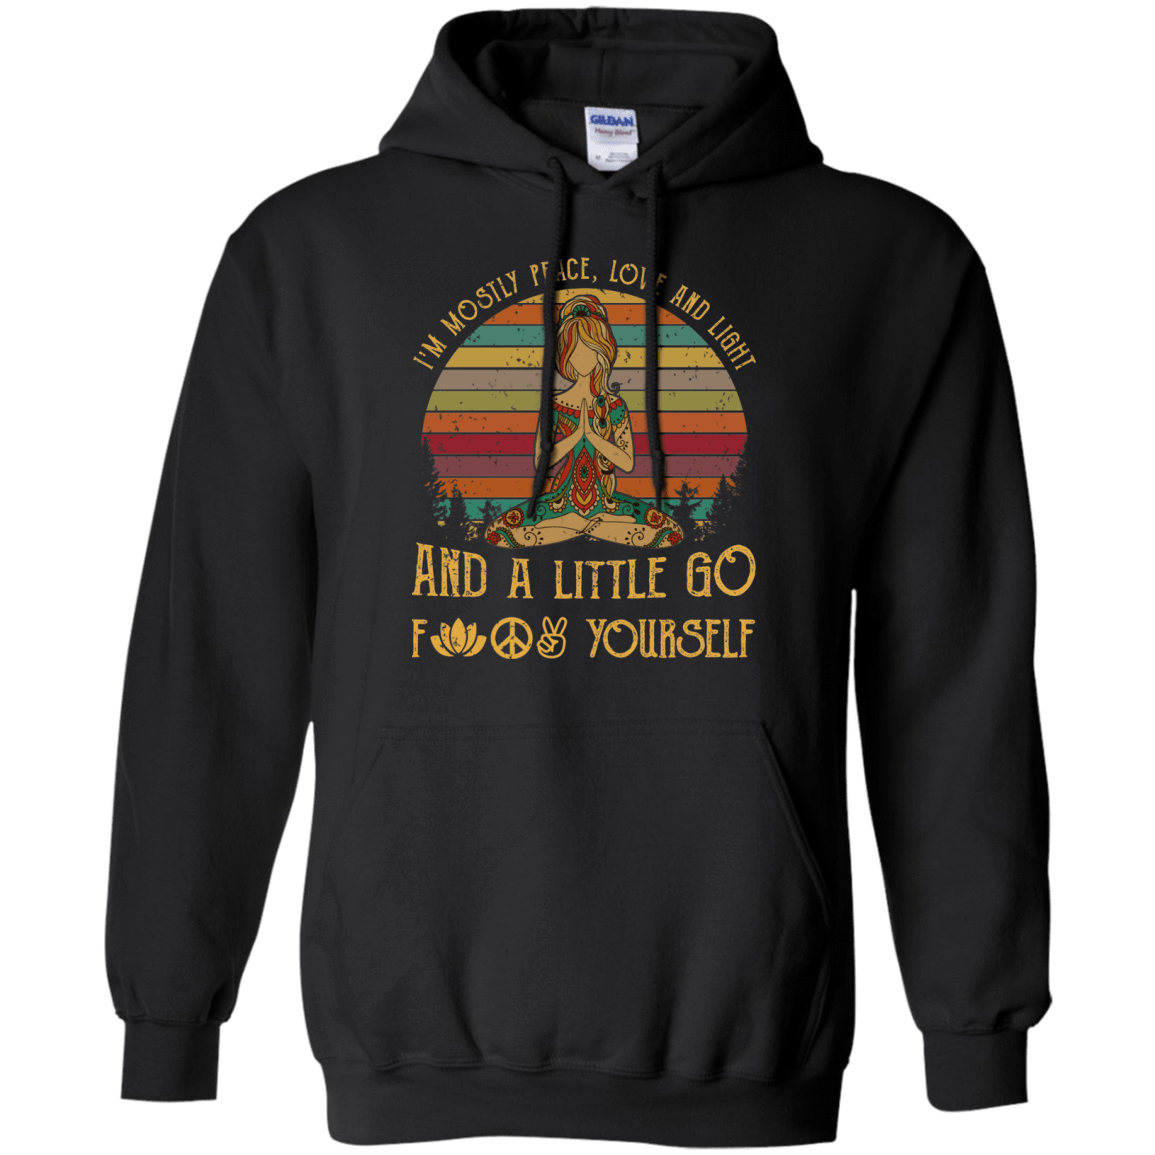 I'm Mostly Peace Love And Light And A Little Go Fuck Yourself Yoga Vintage Retro T-Shirts, Hoodie, Tank 541-4740-78466503-23087 - Tee Ript